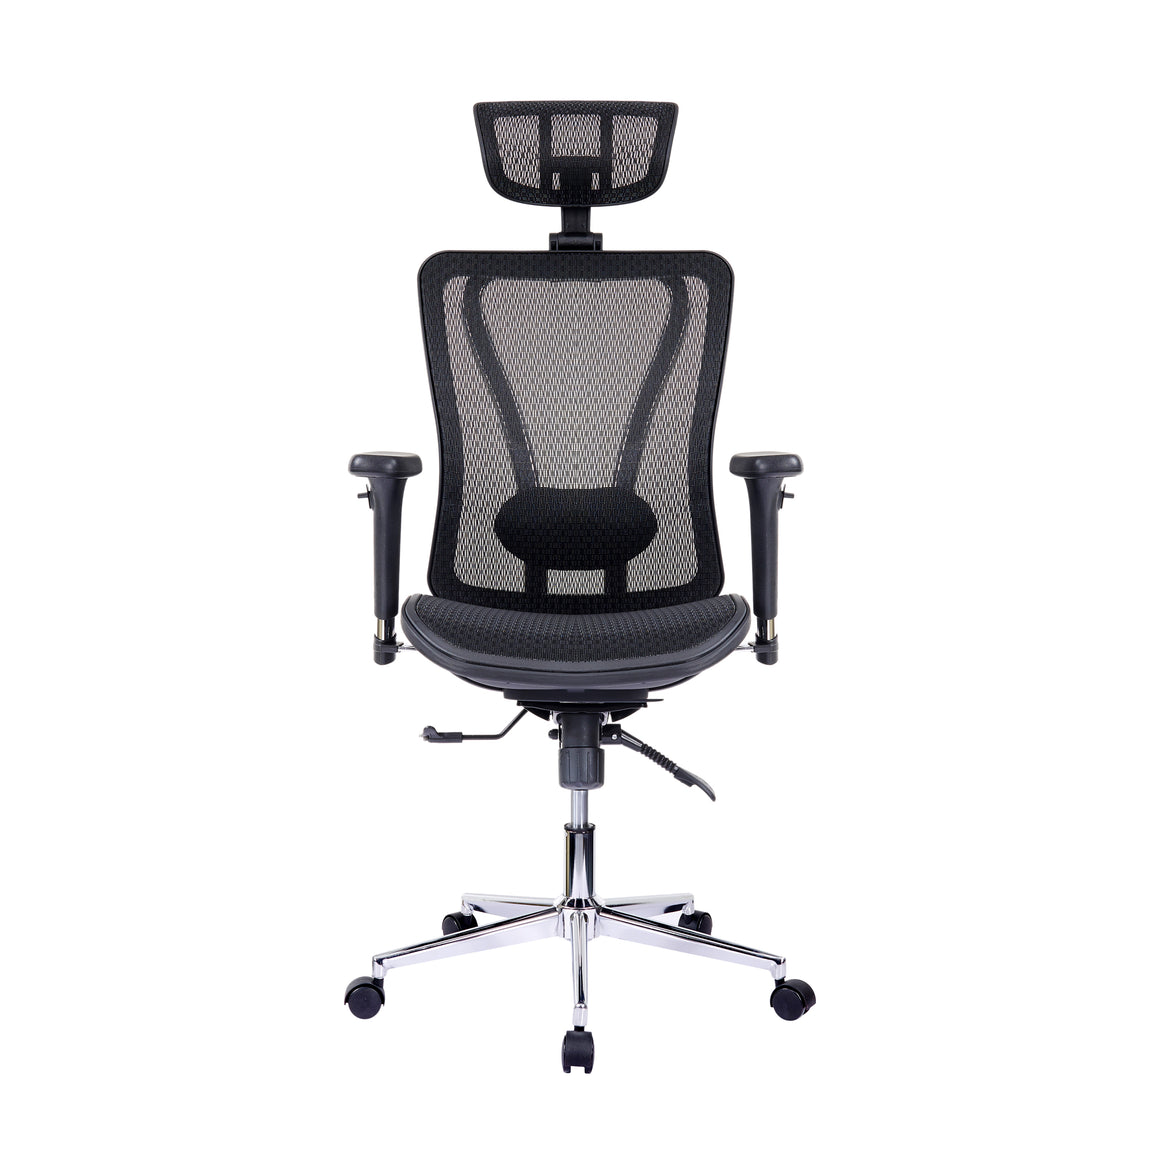 Executive Mesh Office Chair with Headrest and Lumbar Support